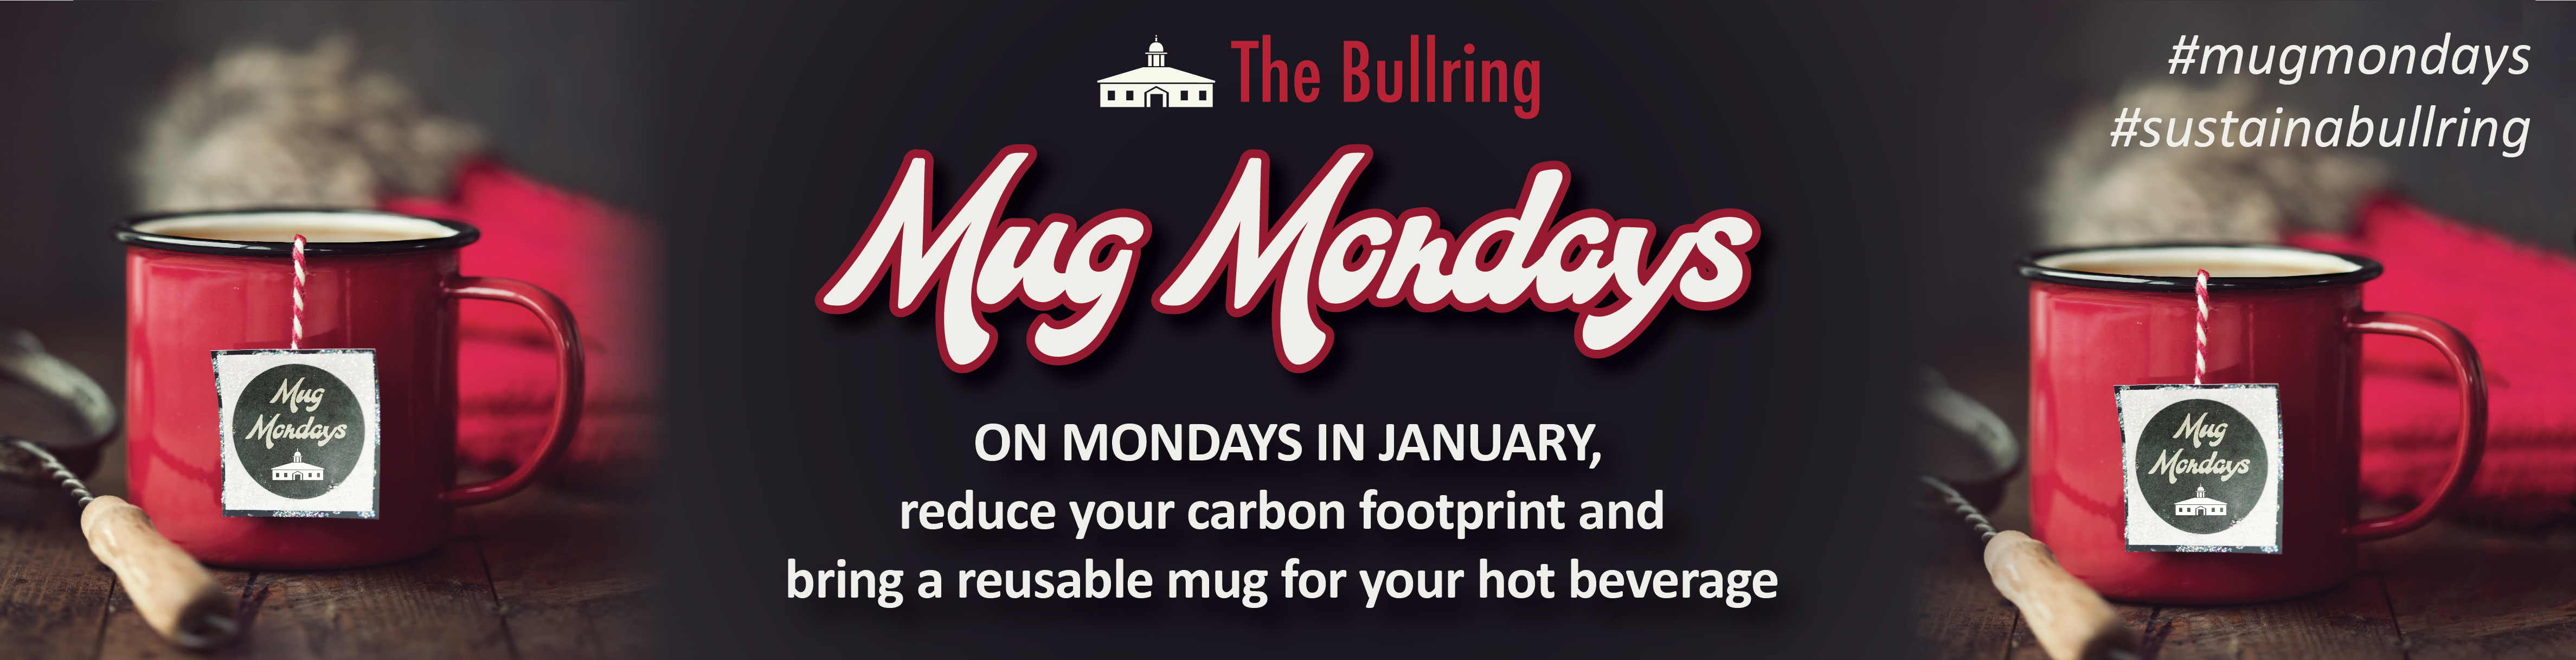 Say Goodbye to reusable cups at the Bullring on Mondays